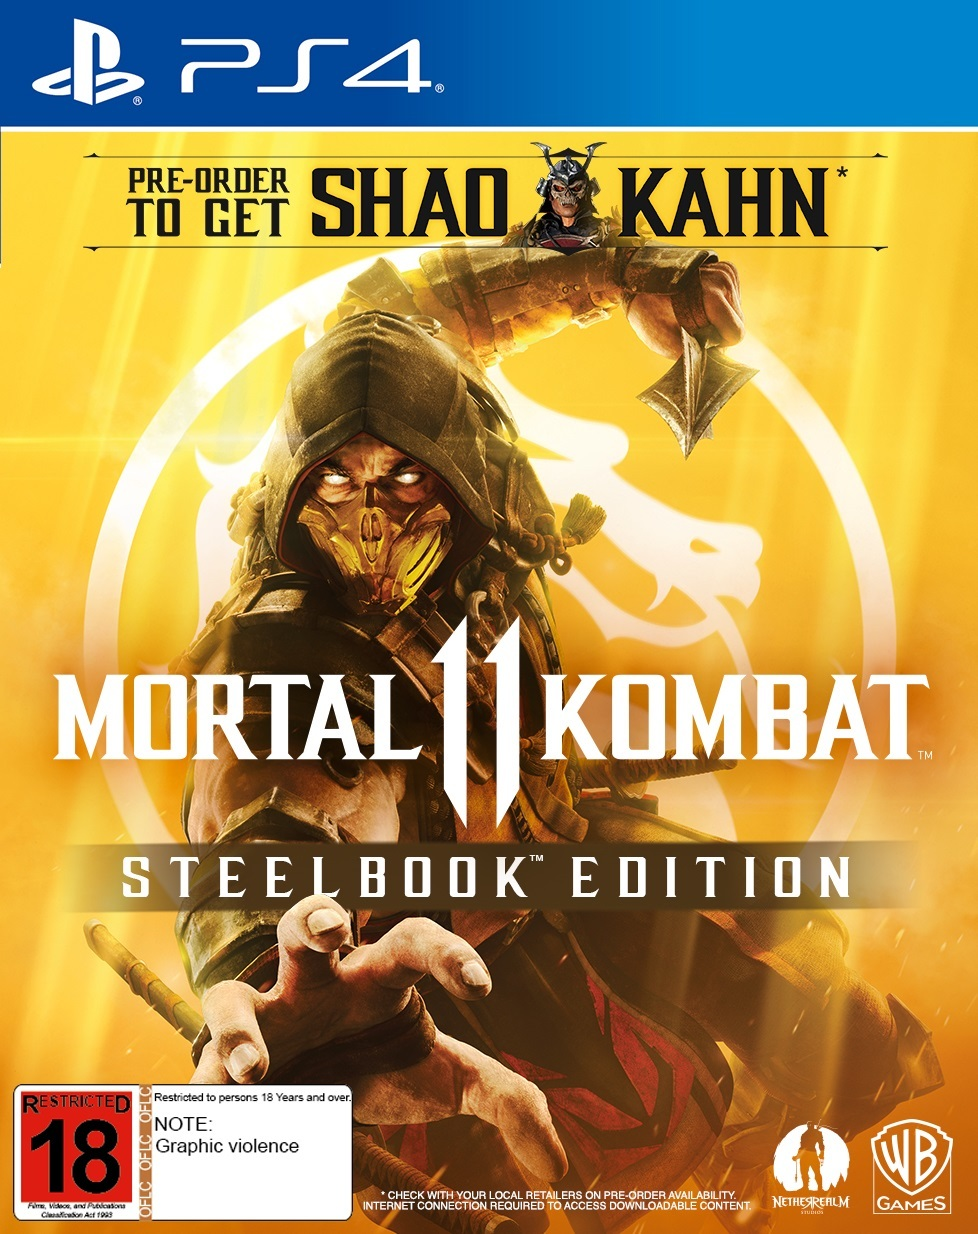 Mortal Kombat 11 Steelbook Edition for PS4 image